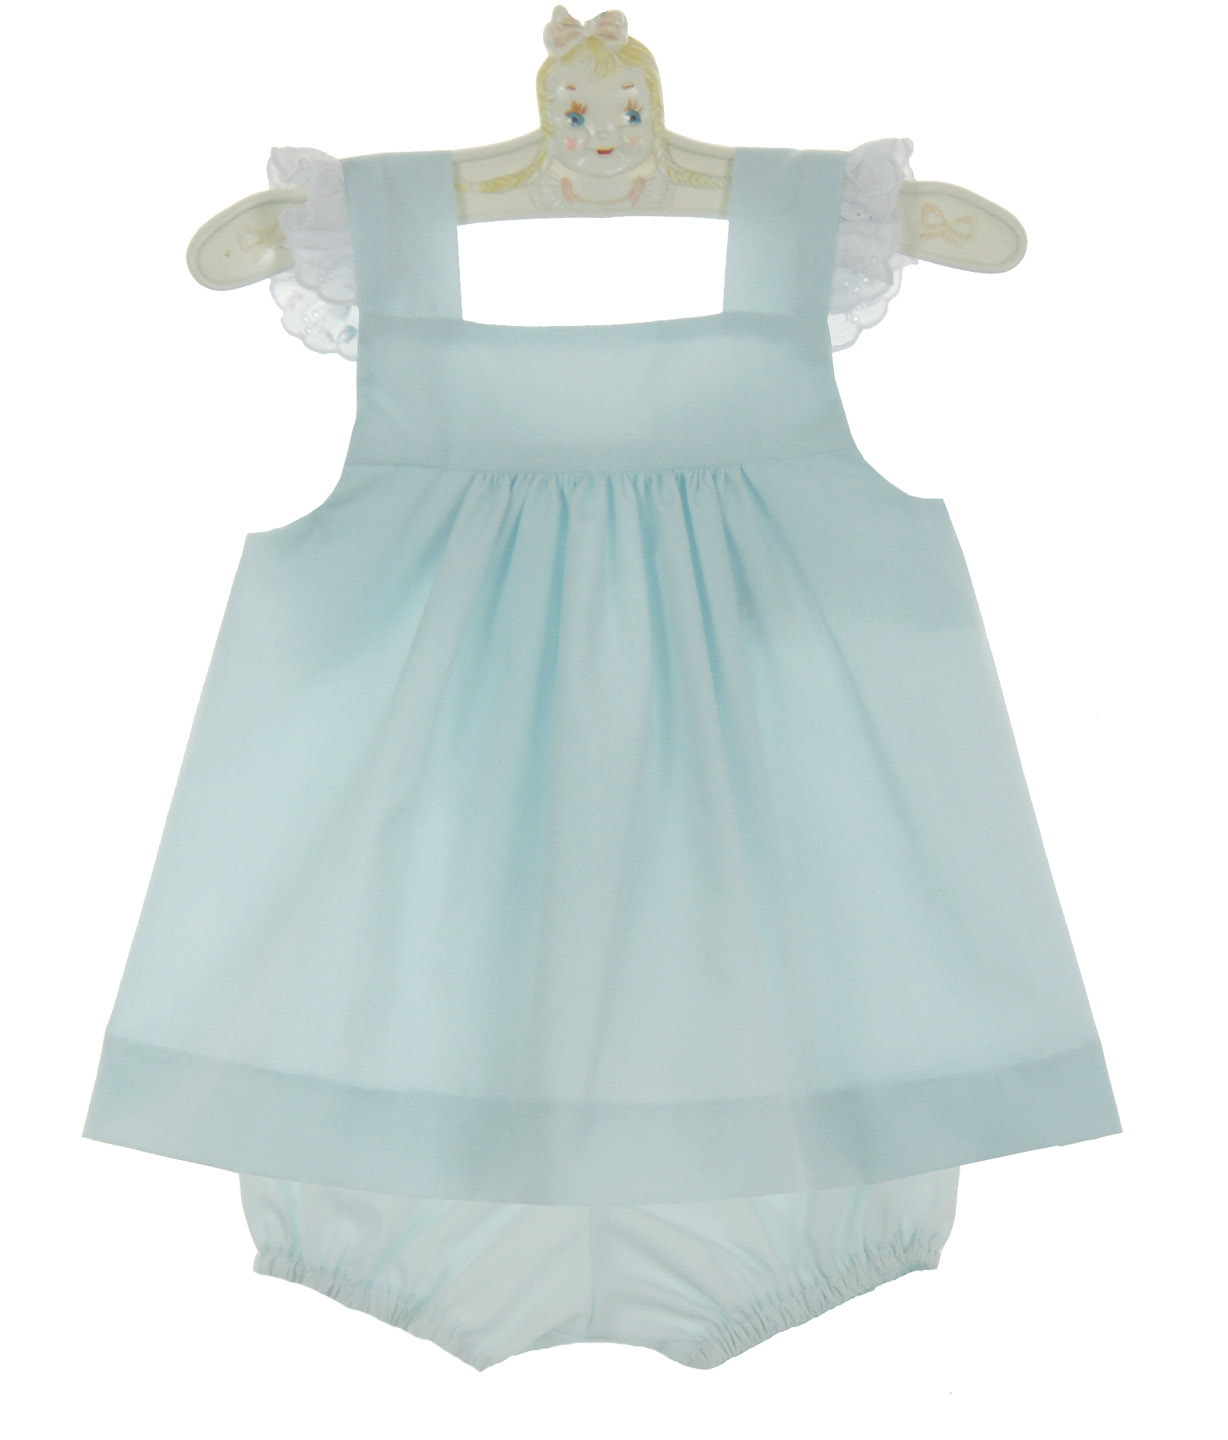 Lullaby Set Pale Blue Pinafore Set With Embroidered Eyelet